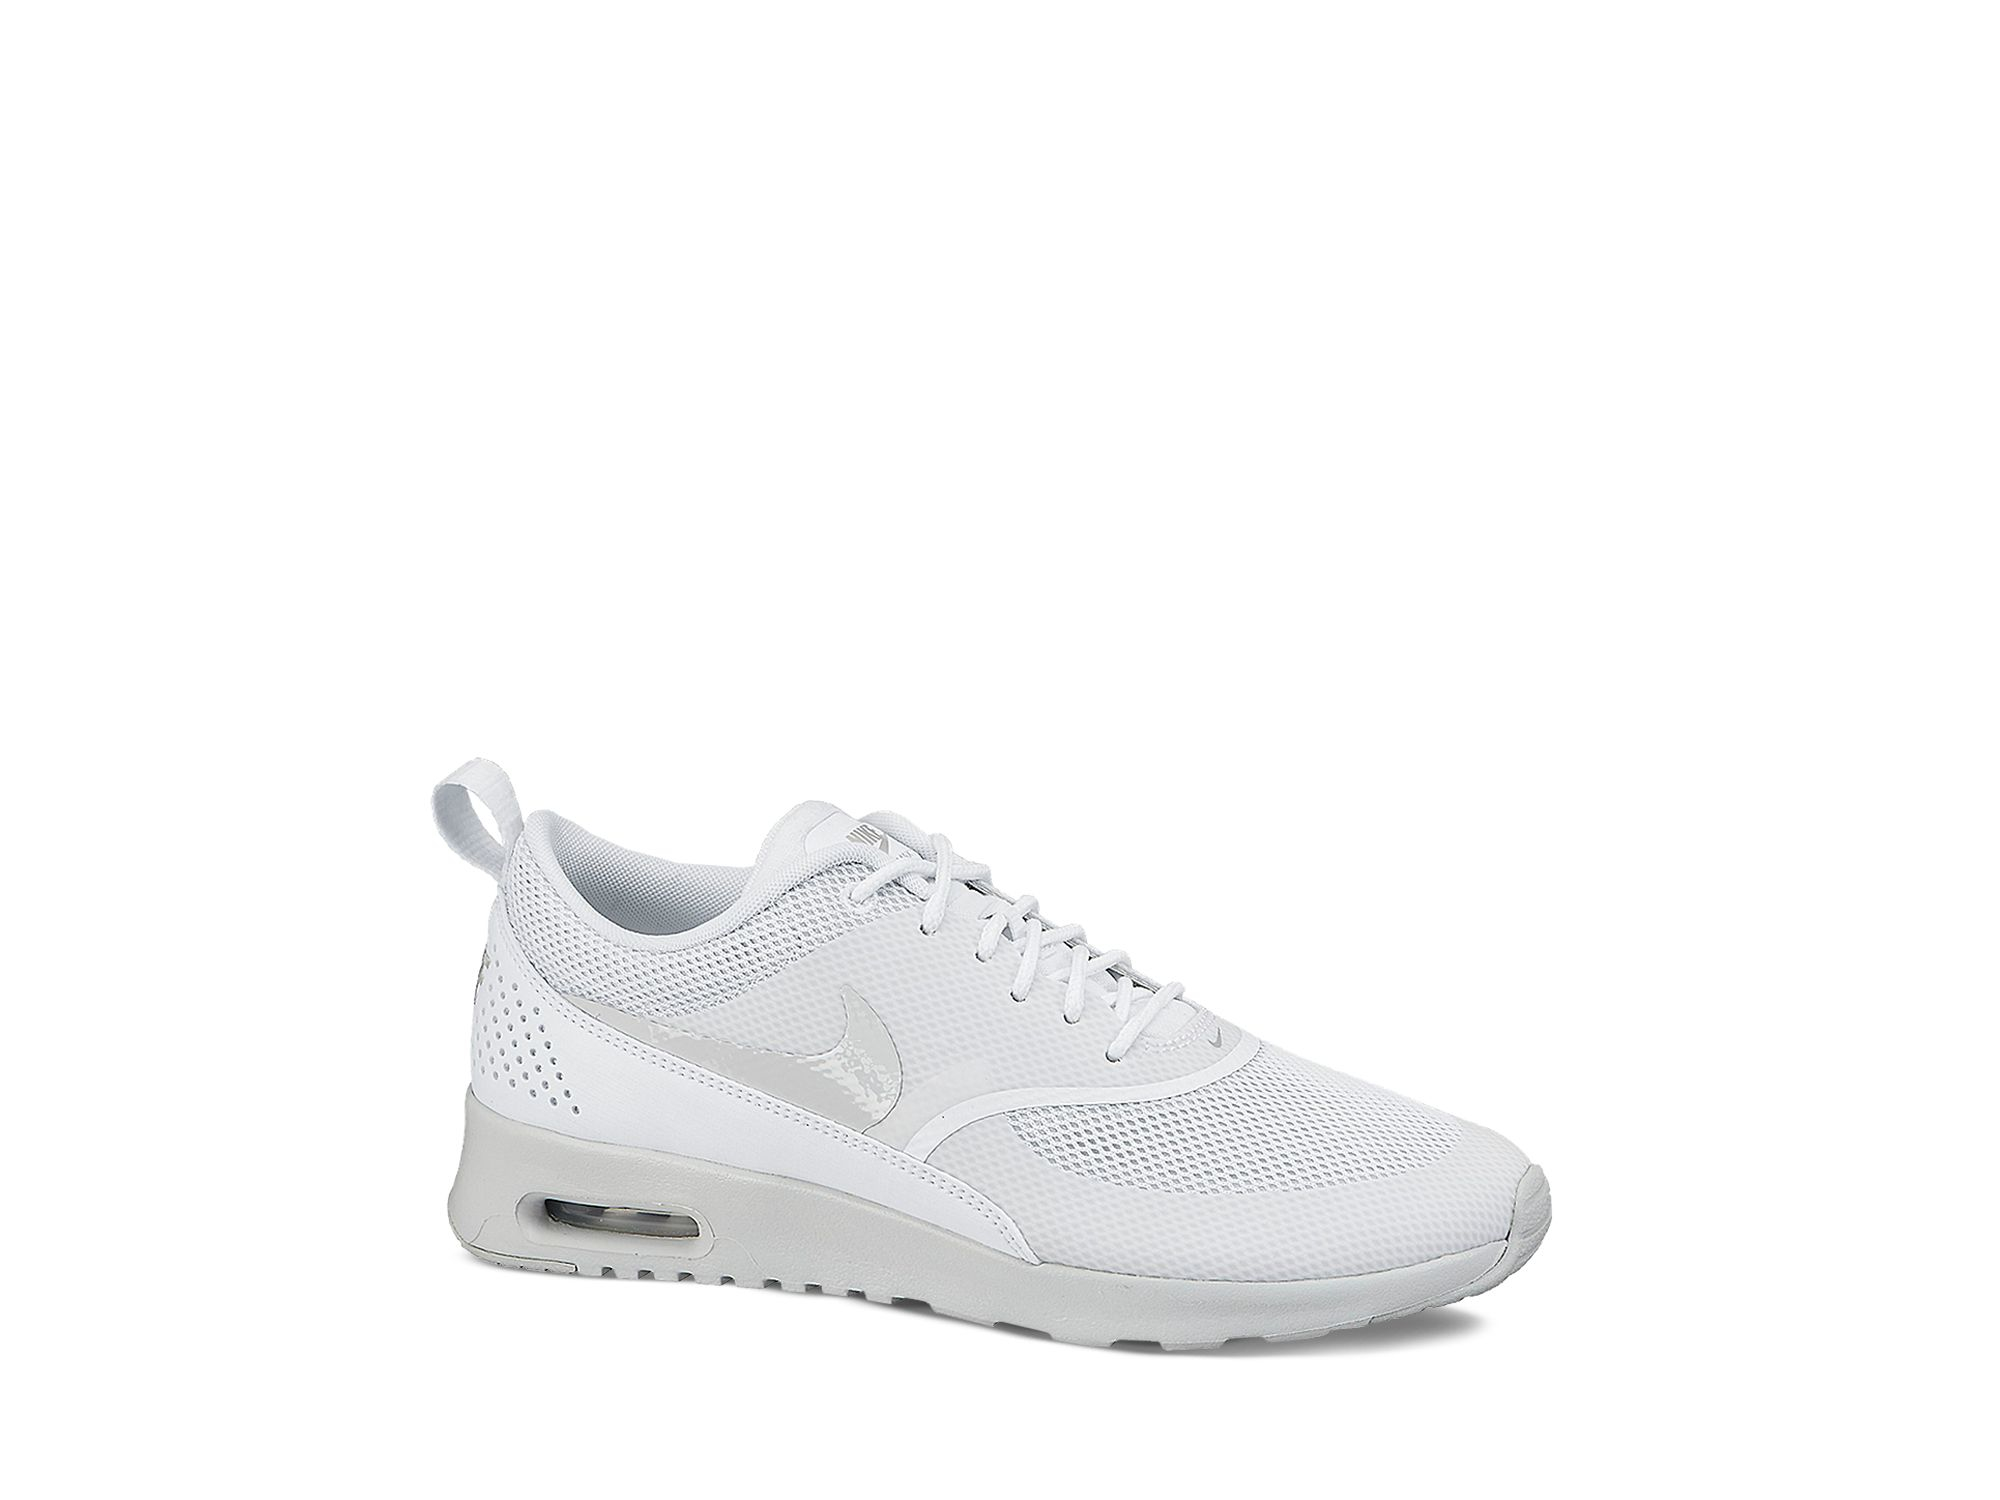 b3748fb523 Gallery. Previously sold at: Bloomingdale's · Women's Nike Air Max